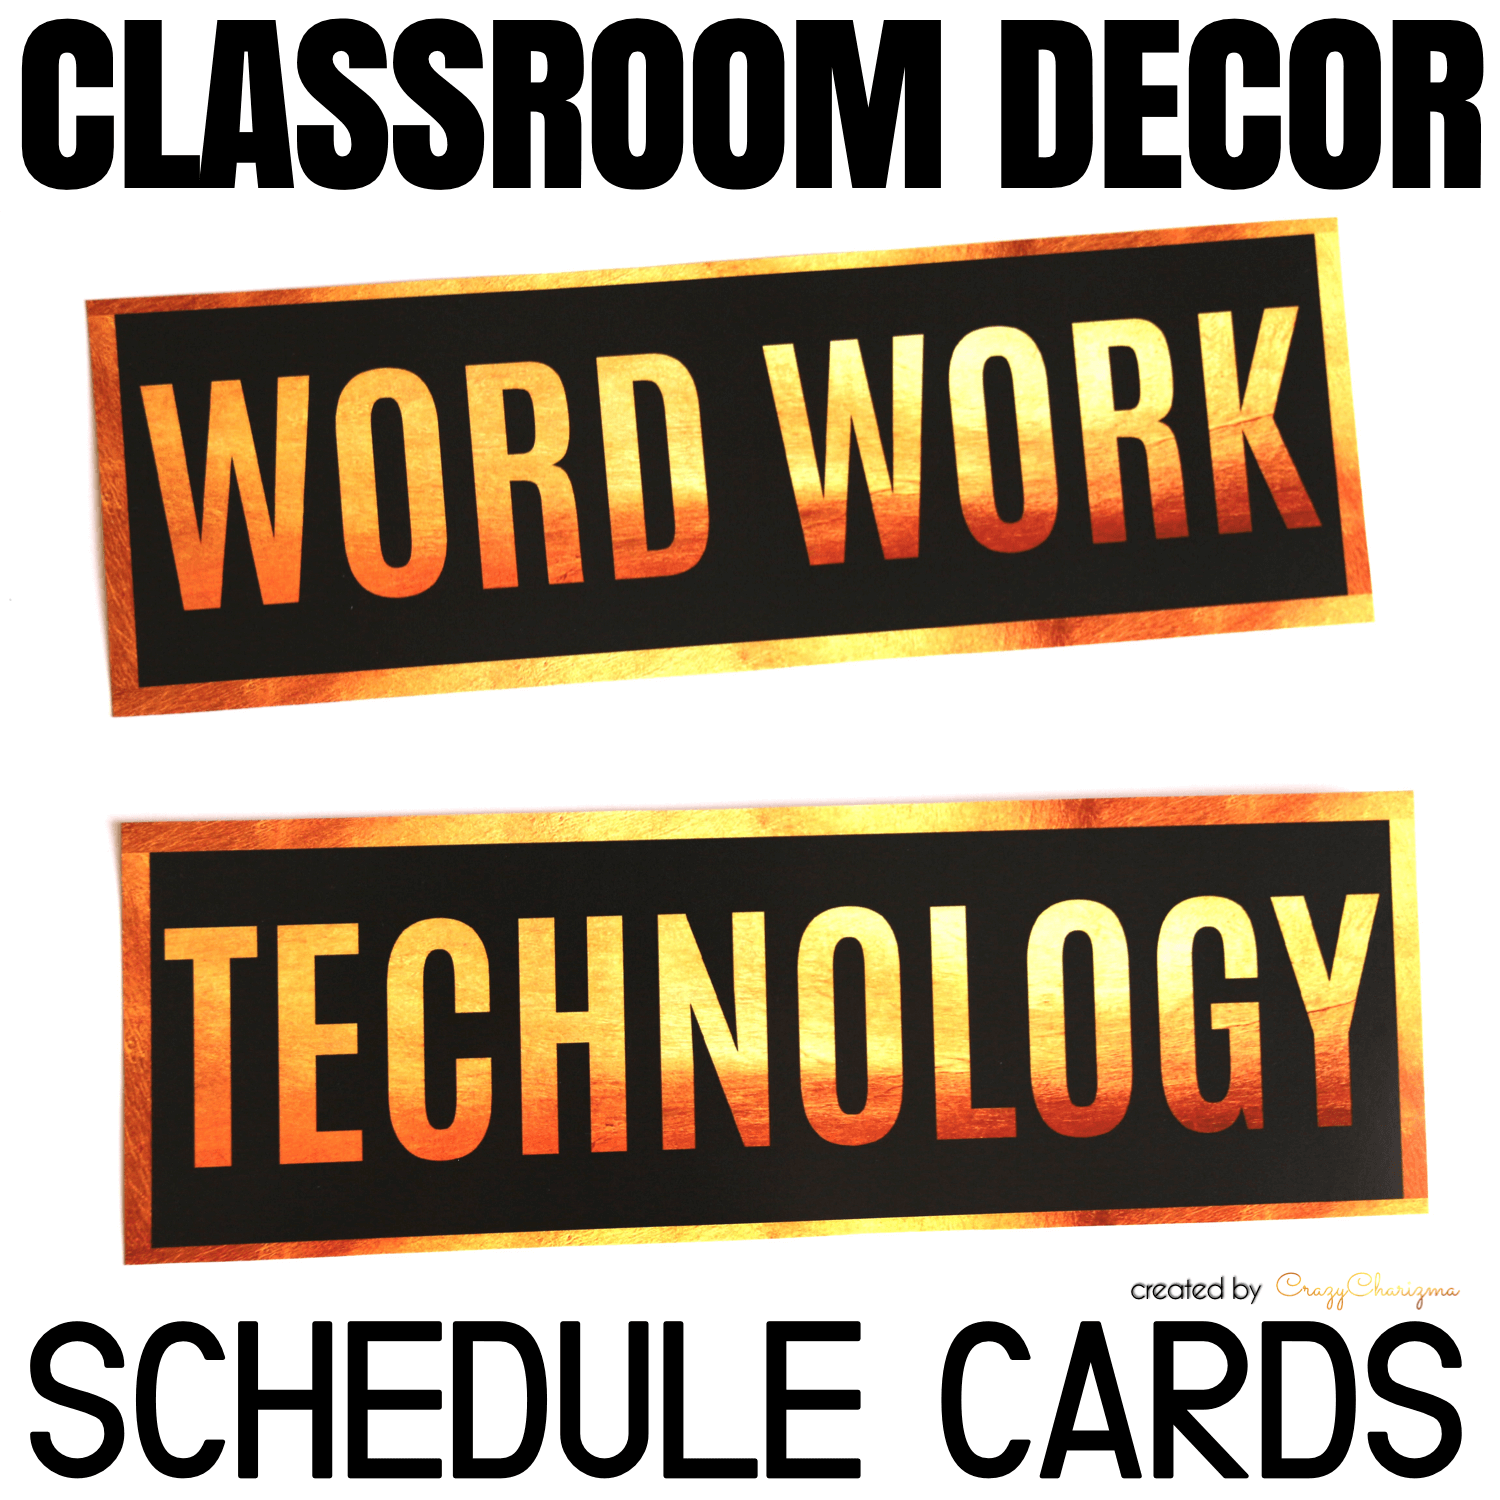 Decorate your classroom with this stylish BLACK and GOLD decor set. Find inside vibrant and bright Schedule Cards.